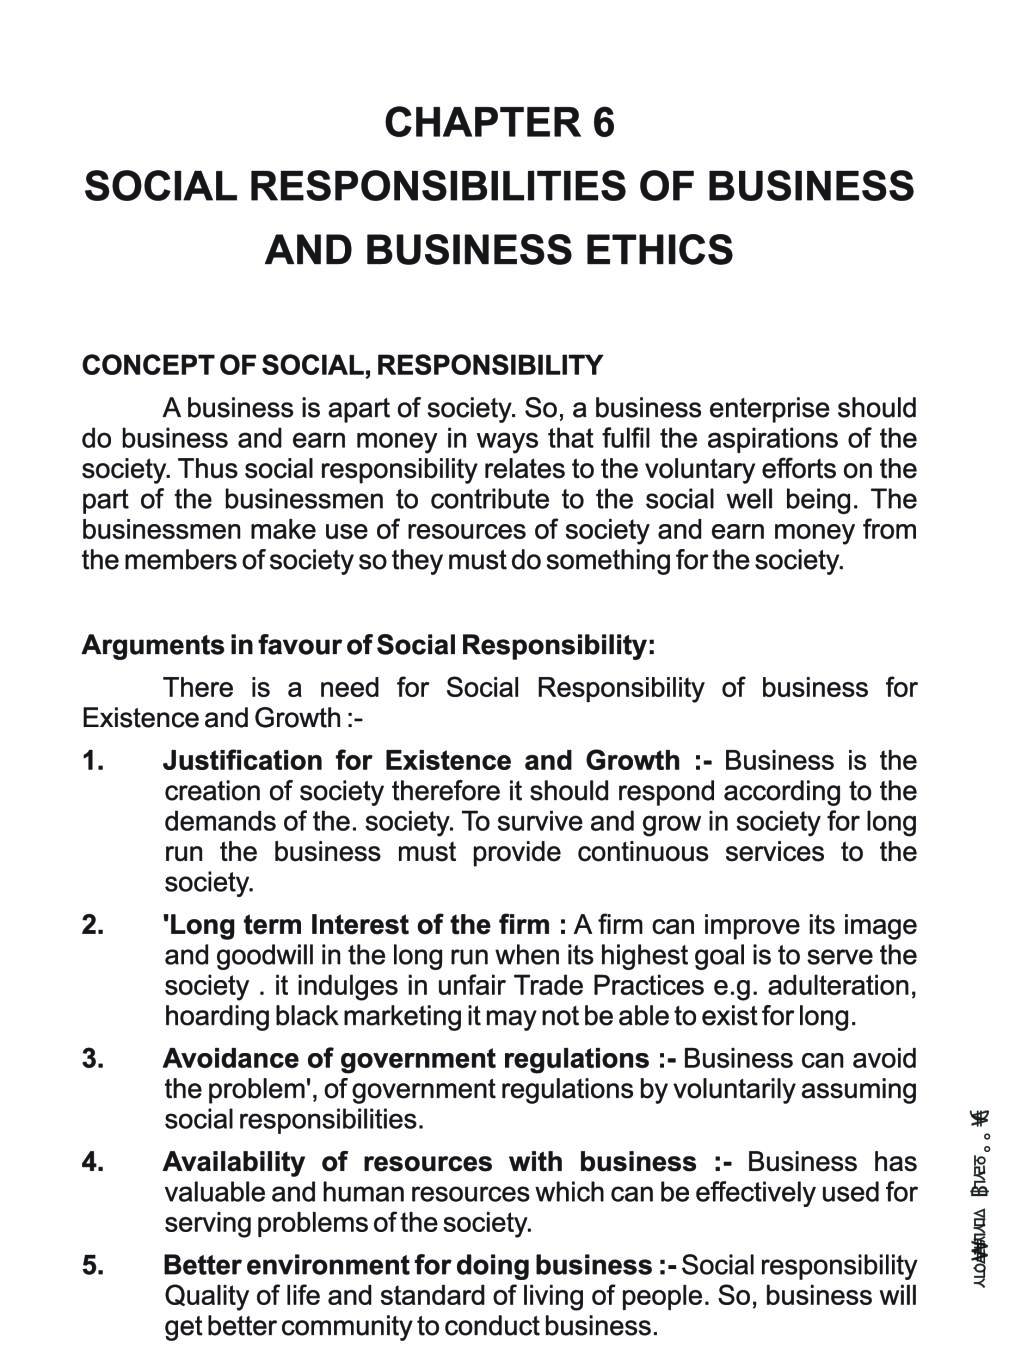 Class 11 Business Studies Notes for Social Responsibilities of